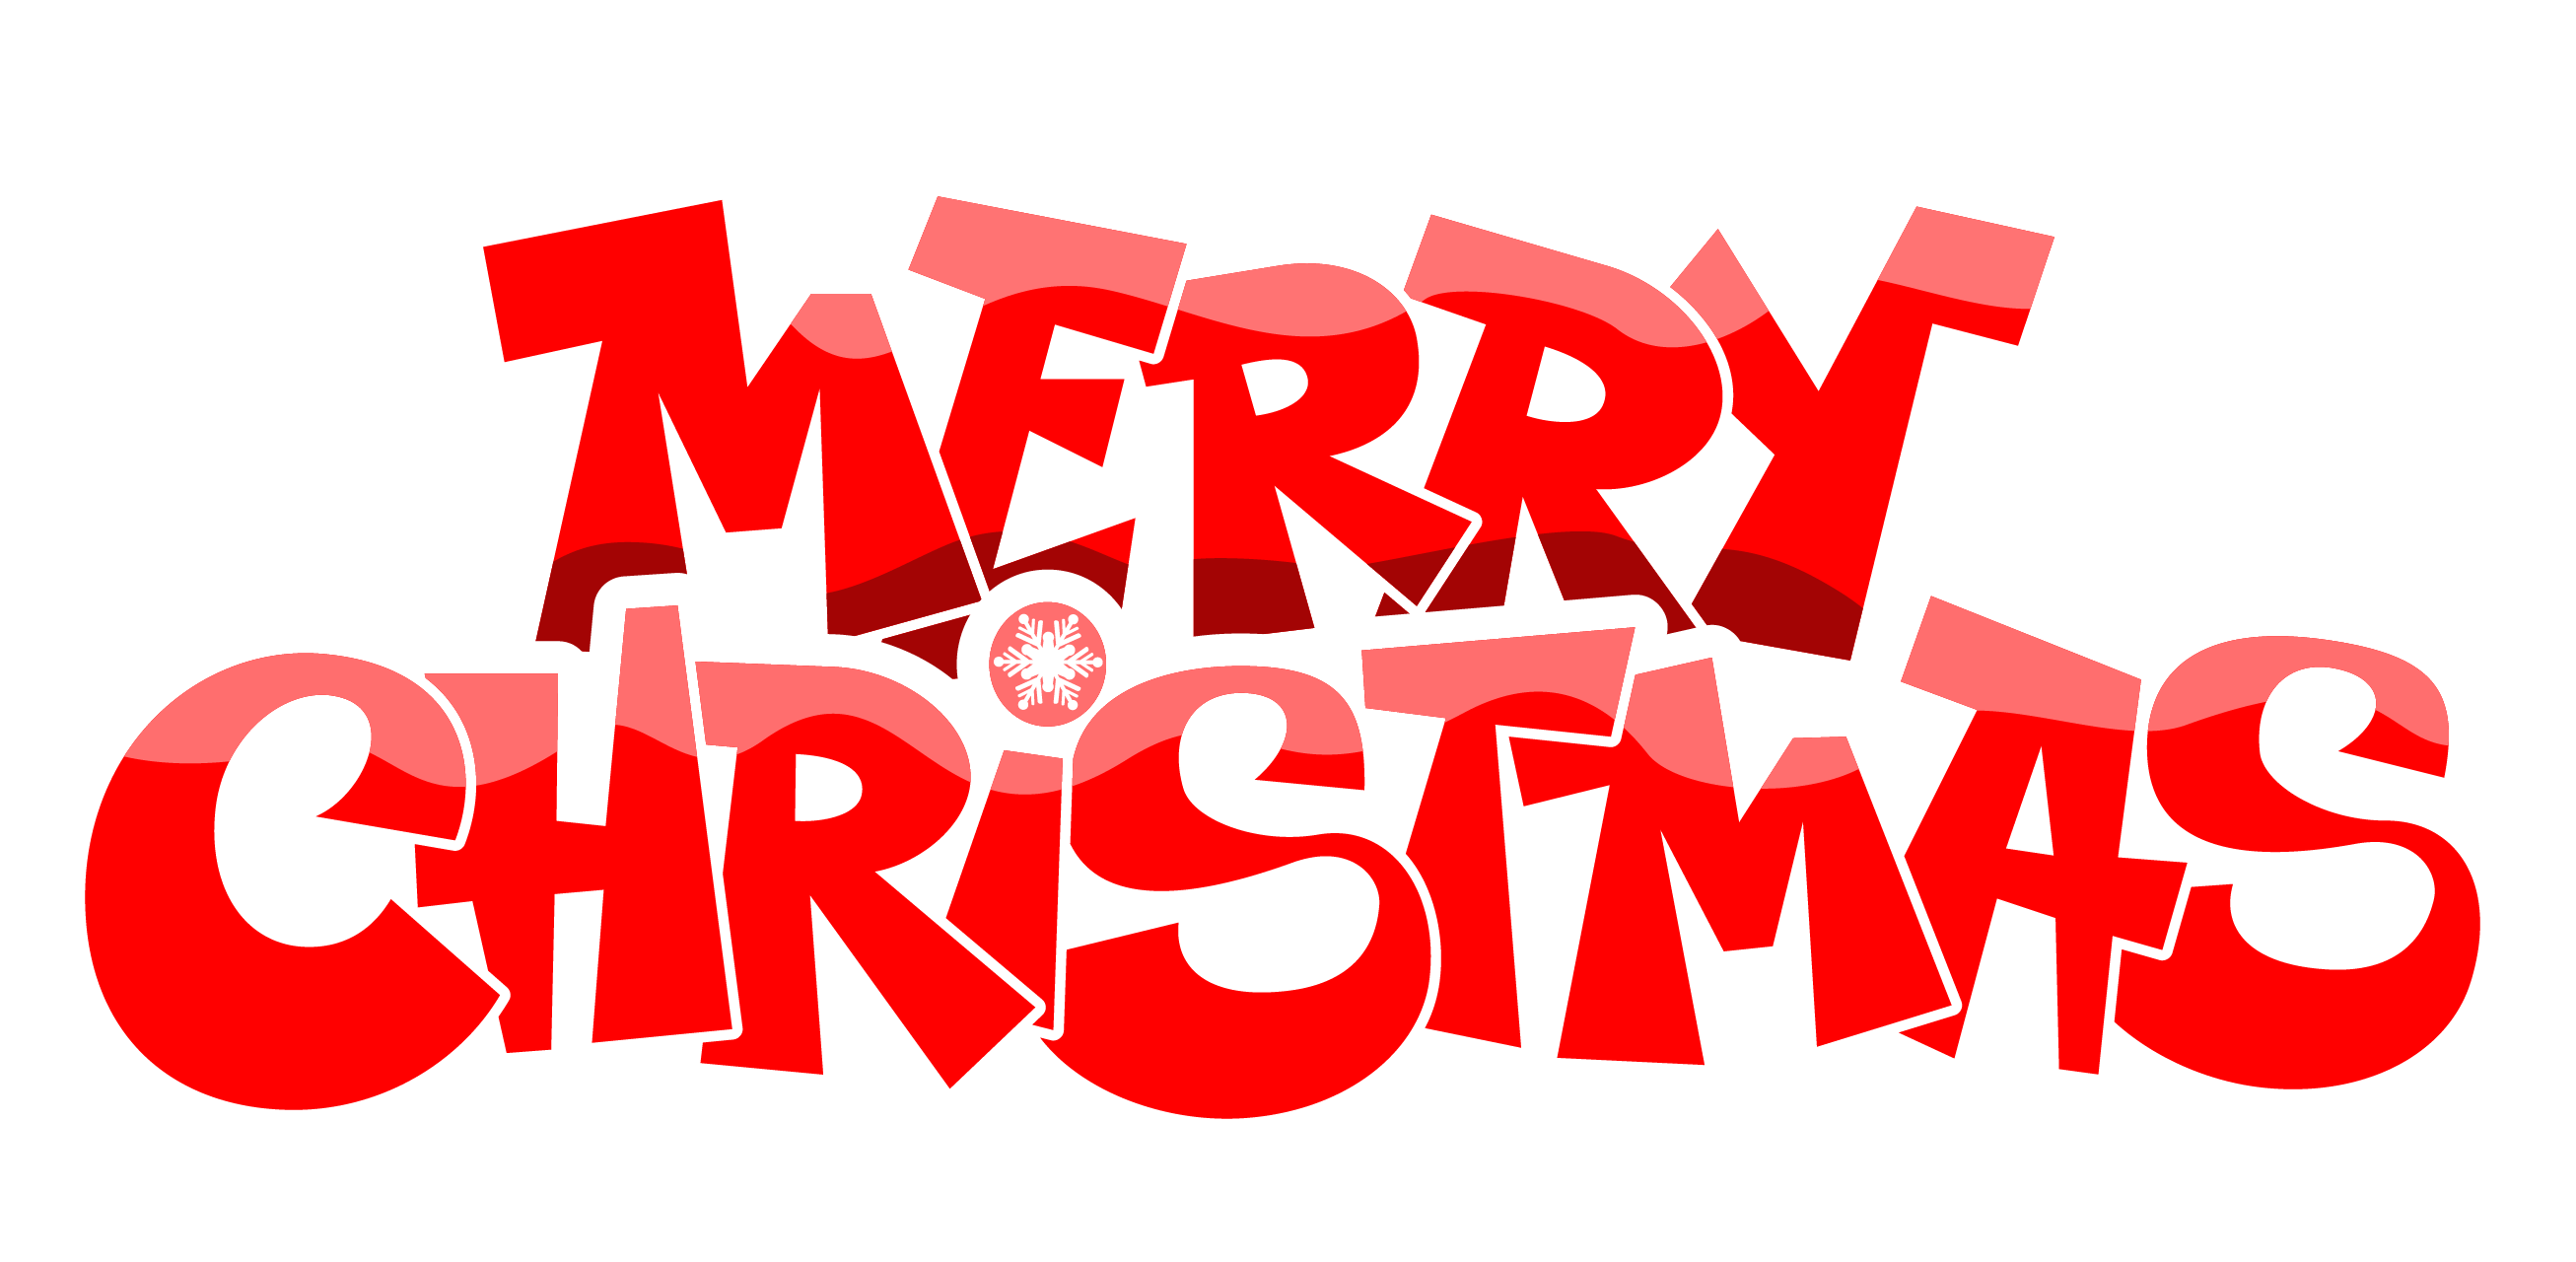 Merry Christmas Text PNG - 16072